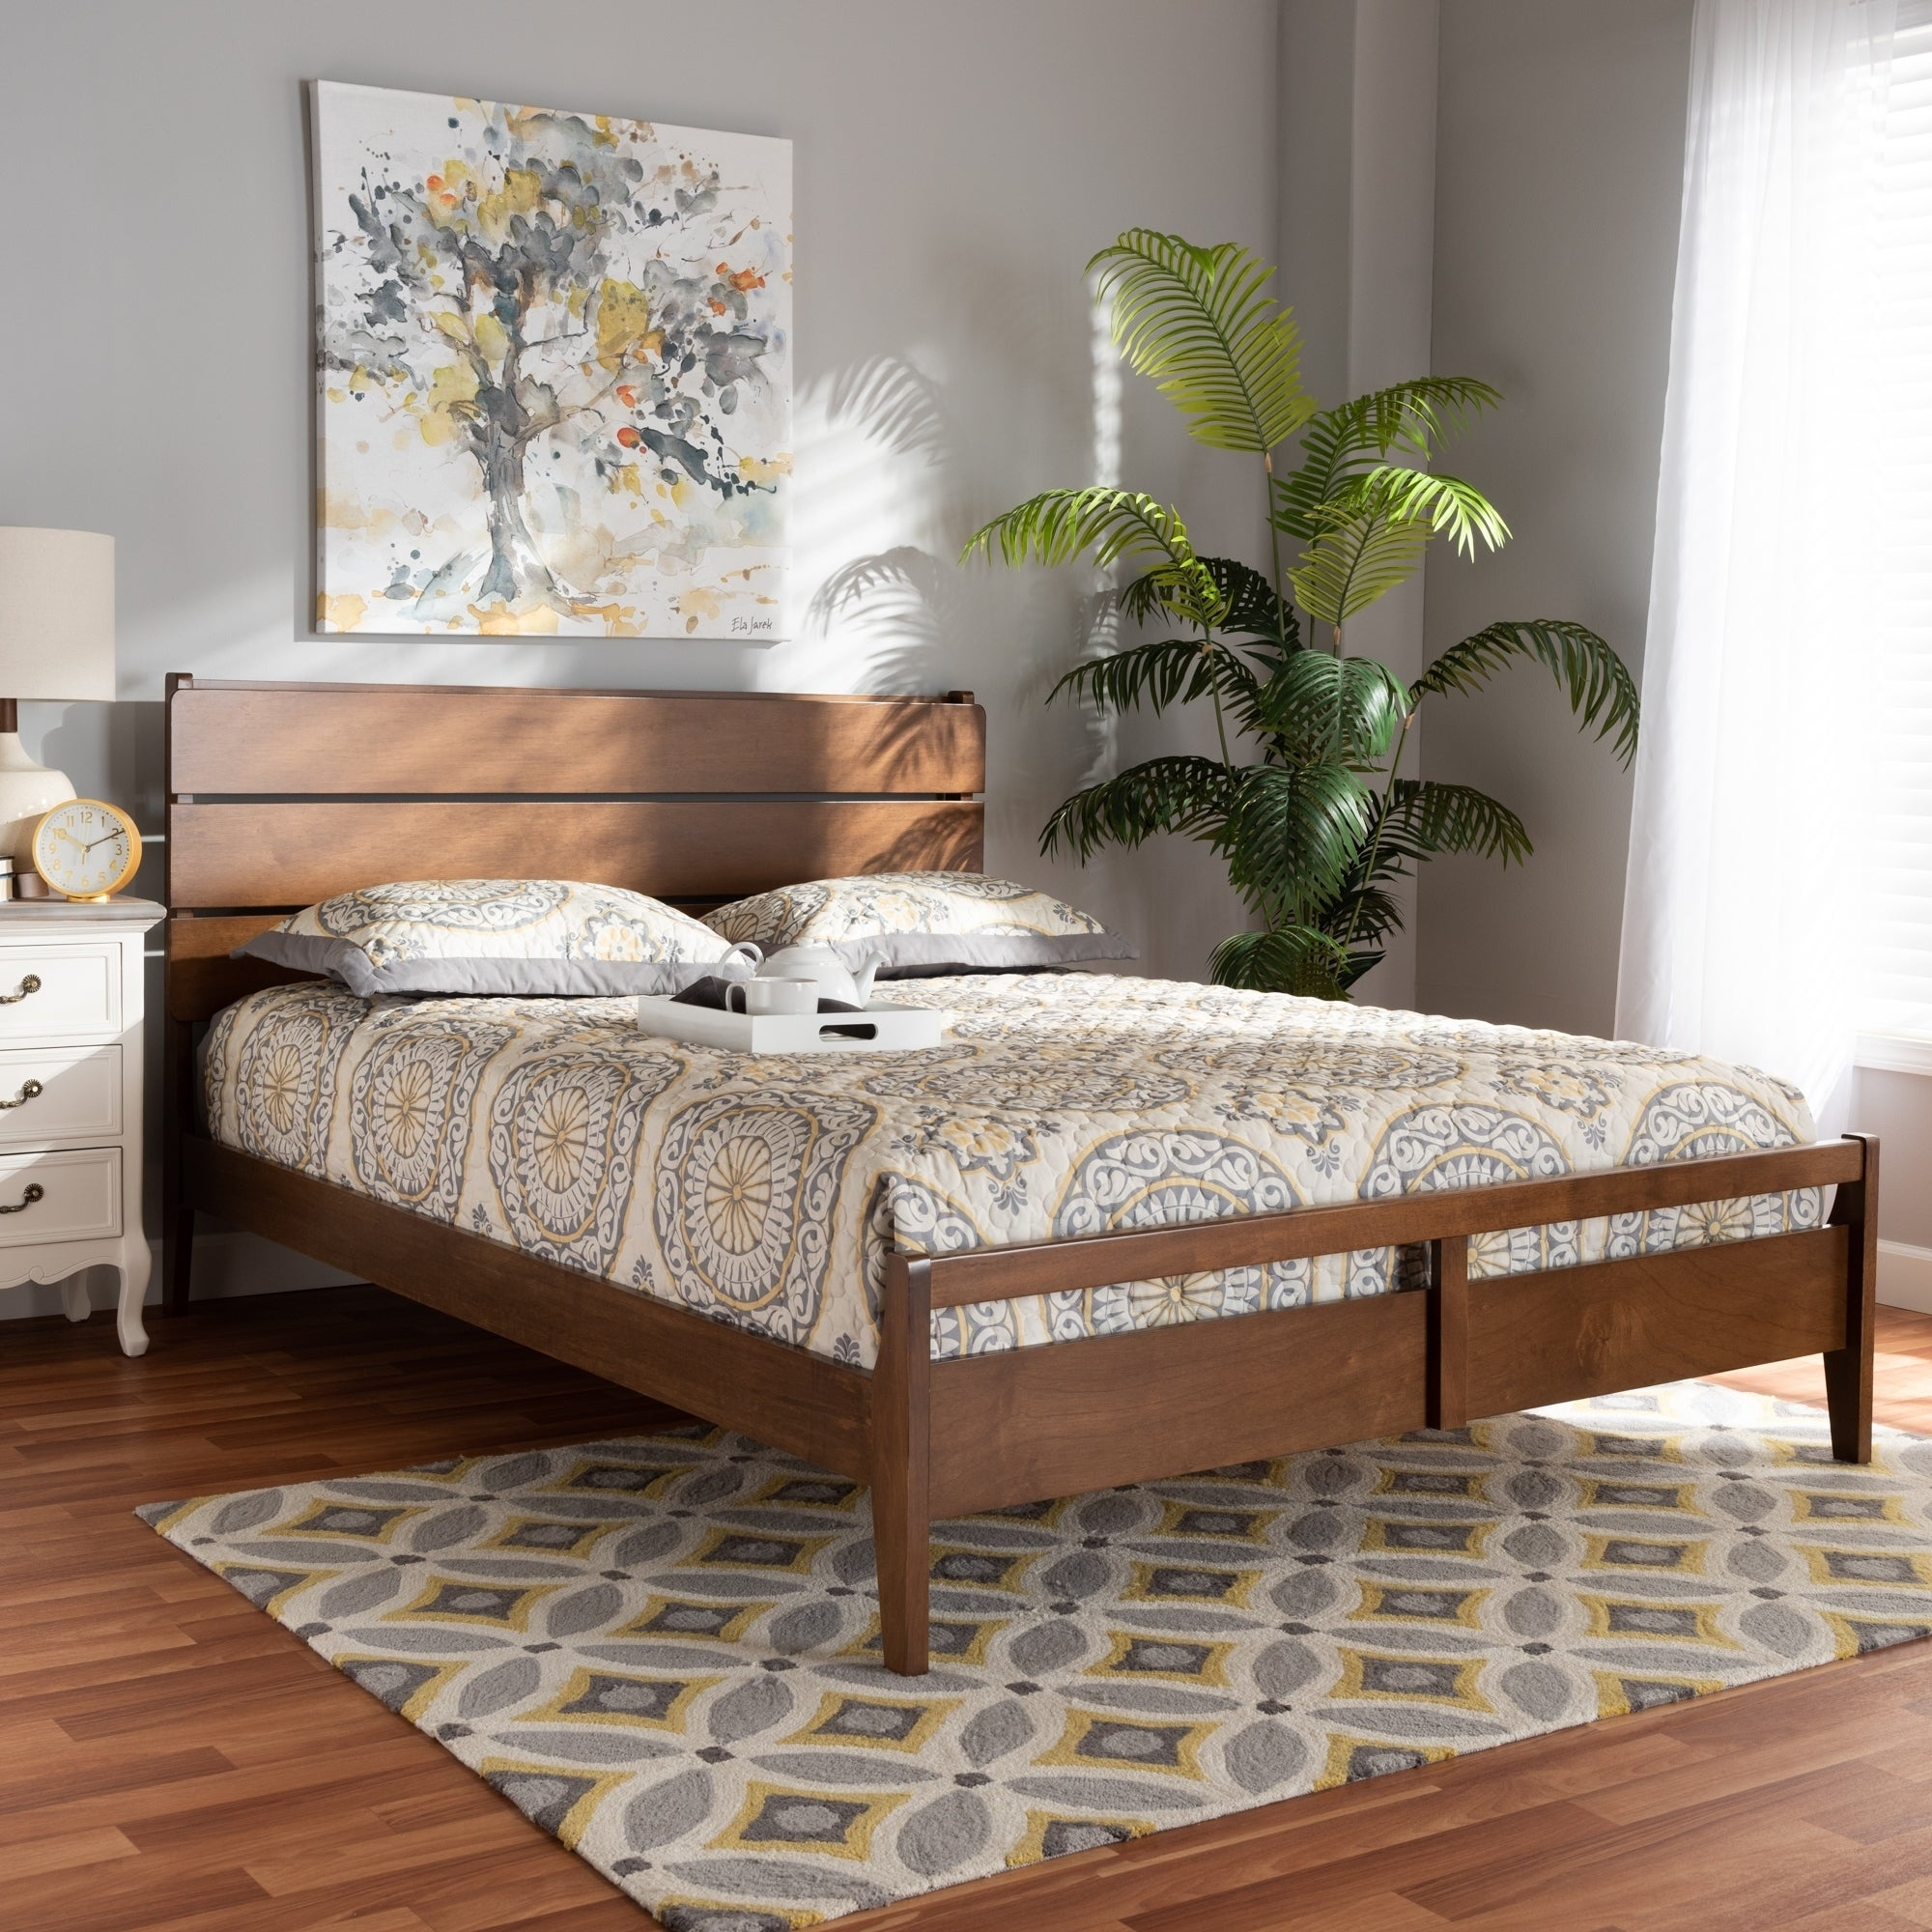 Shop Avena Mid Century Modern Wood Platform Bed Size Queen